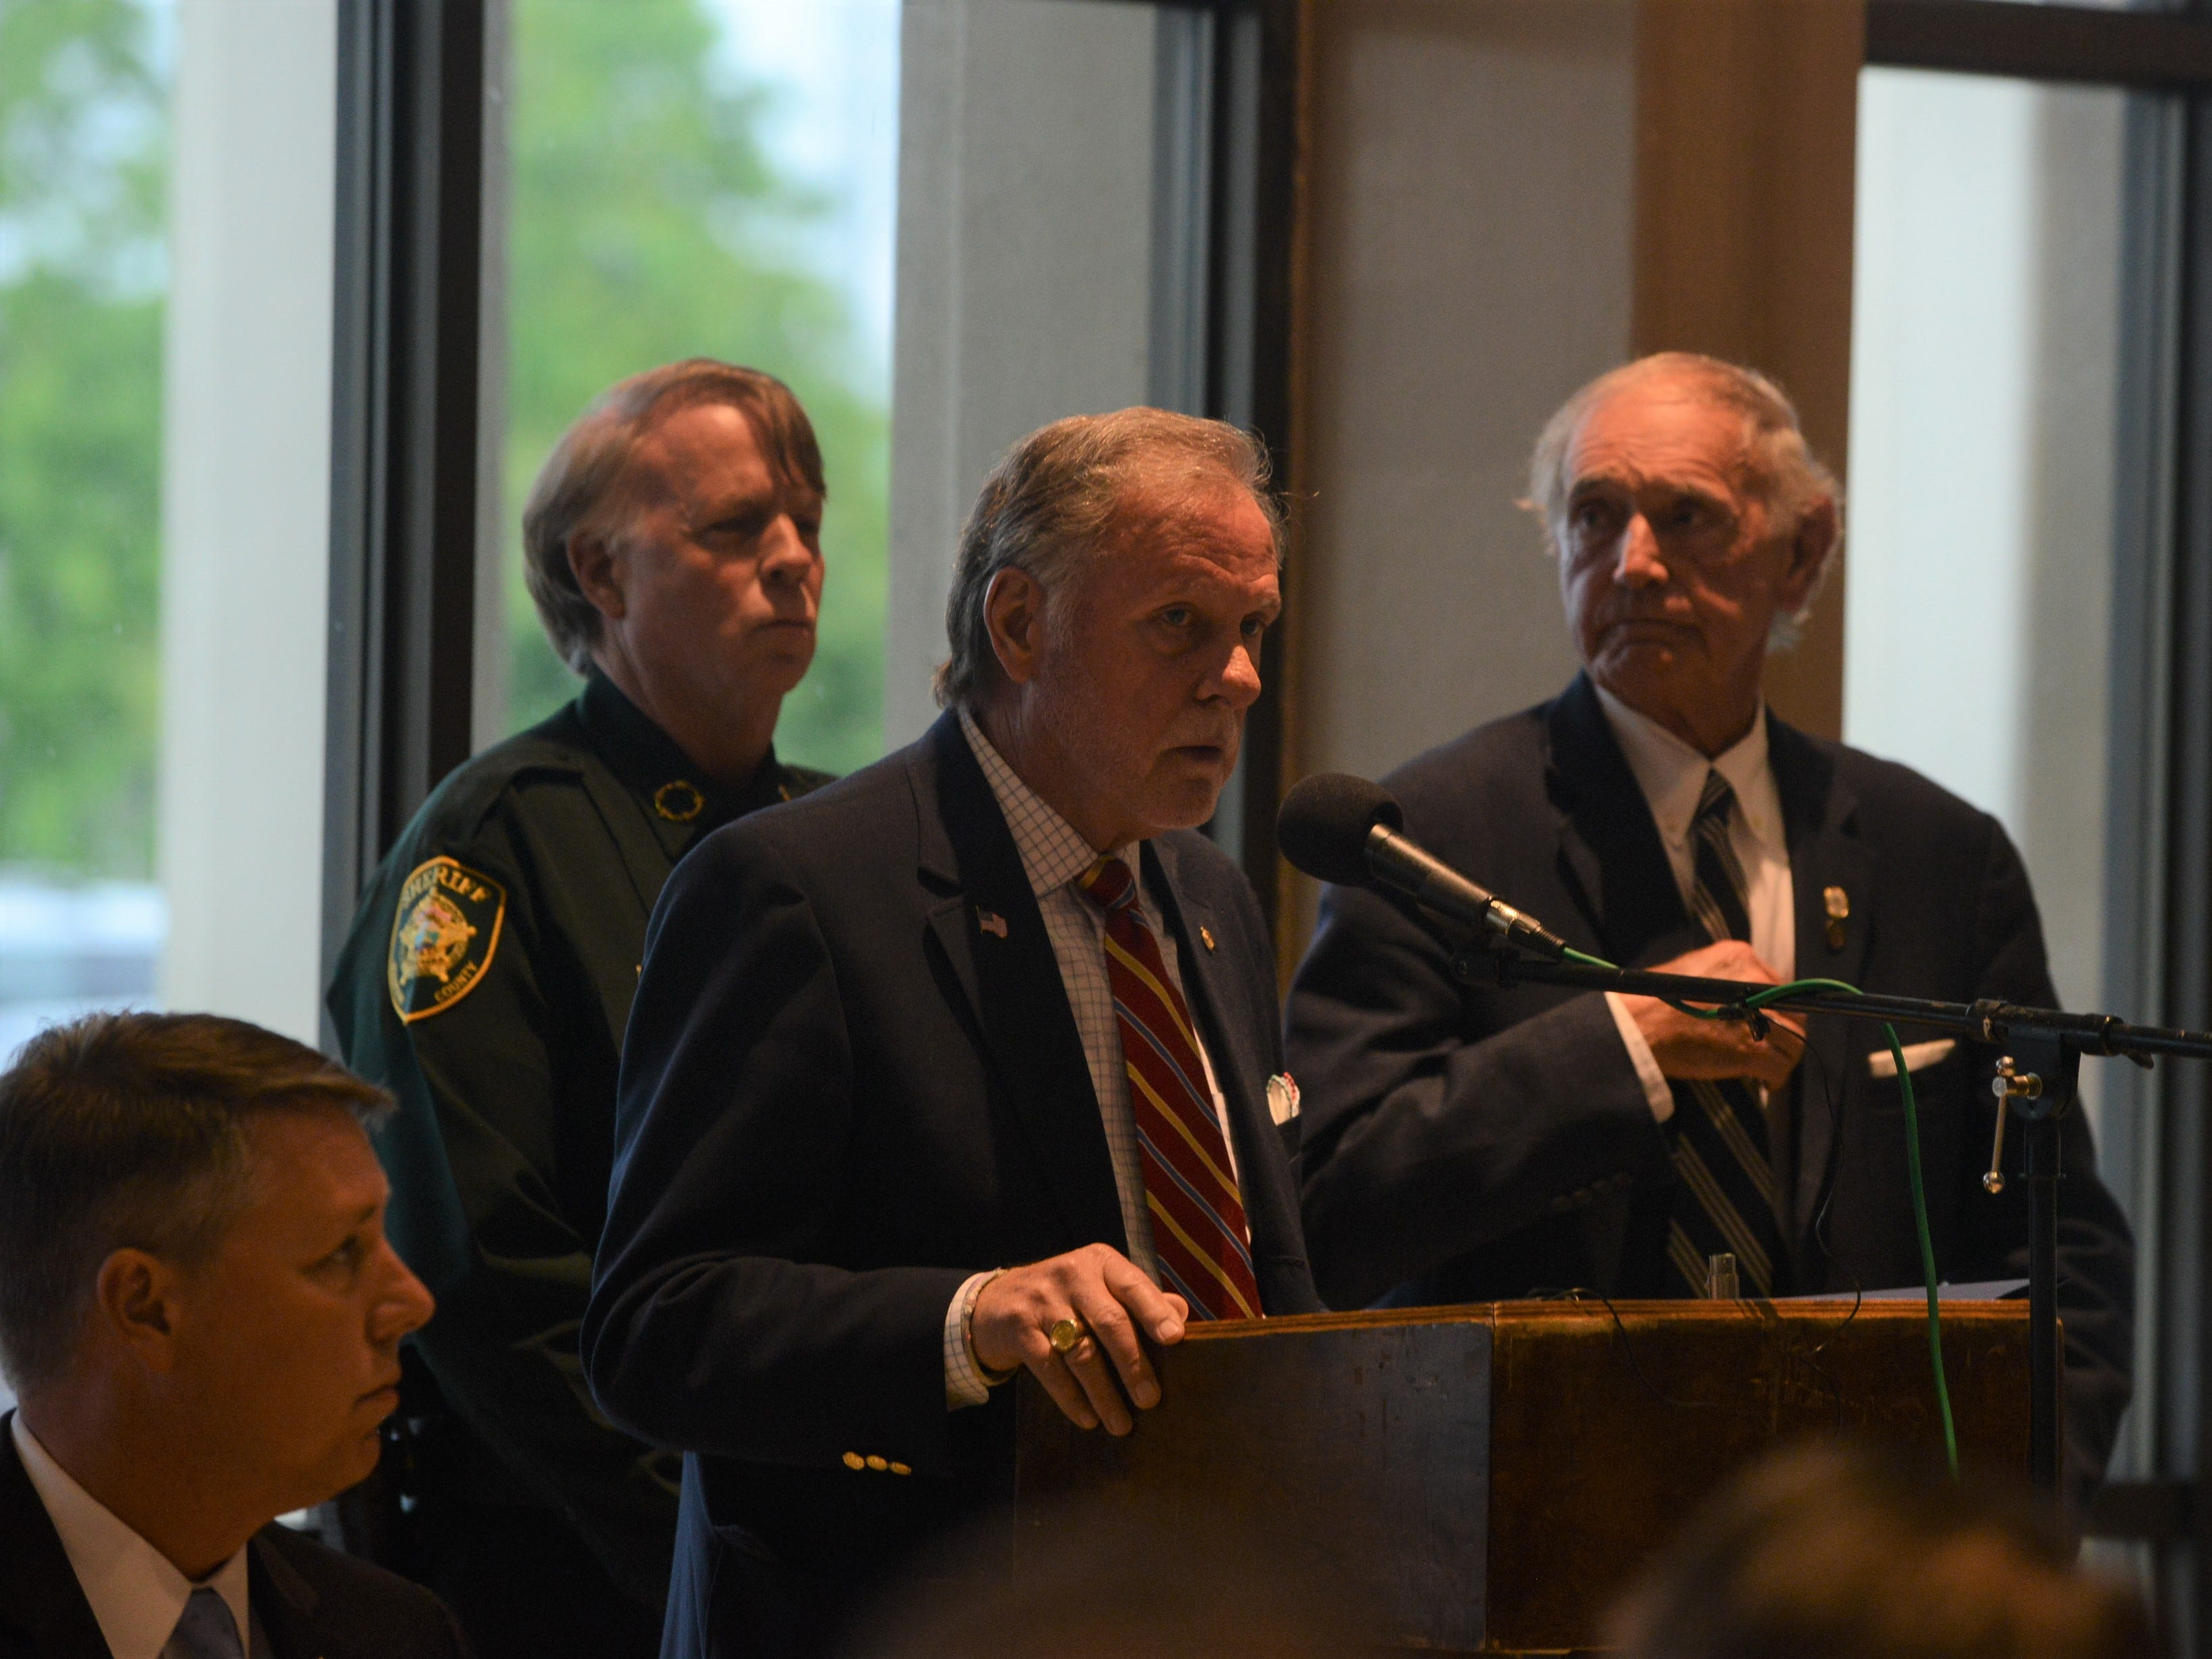 Madison County Mayor Jimmy Harris speaks flanked by Jackson City Mayor Jerry Gist and Madison County Sheriff John Mehr at the Carl Perkins Civic Center in Jackson during the National Law Enforcement Memorial Service on Wednesday, May 15, 2019.